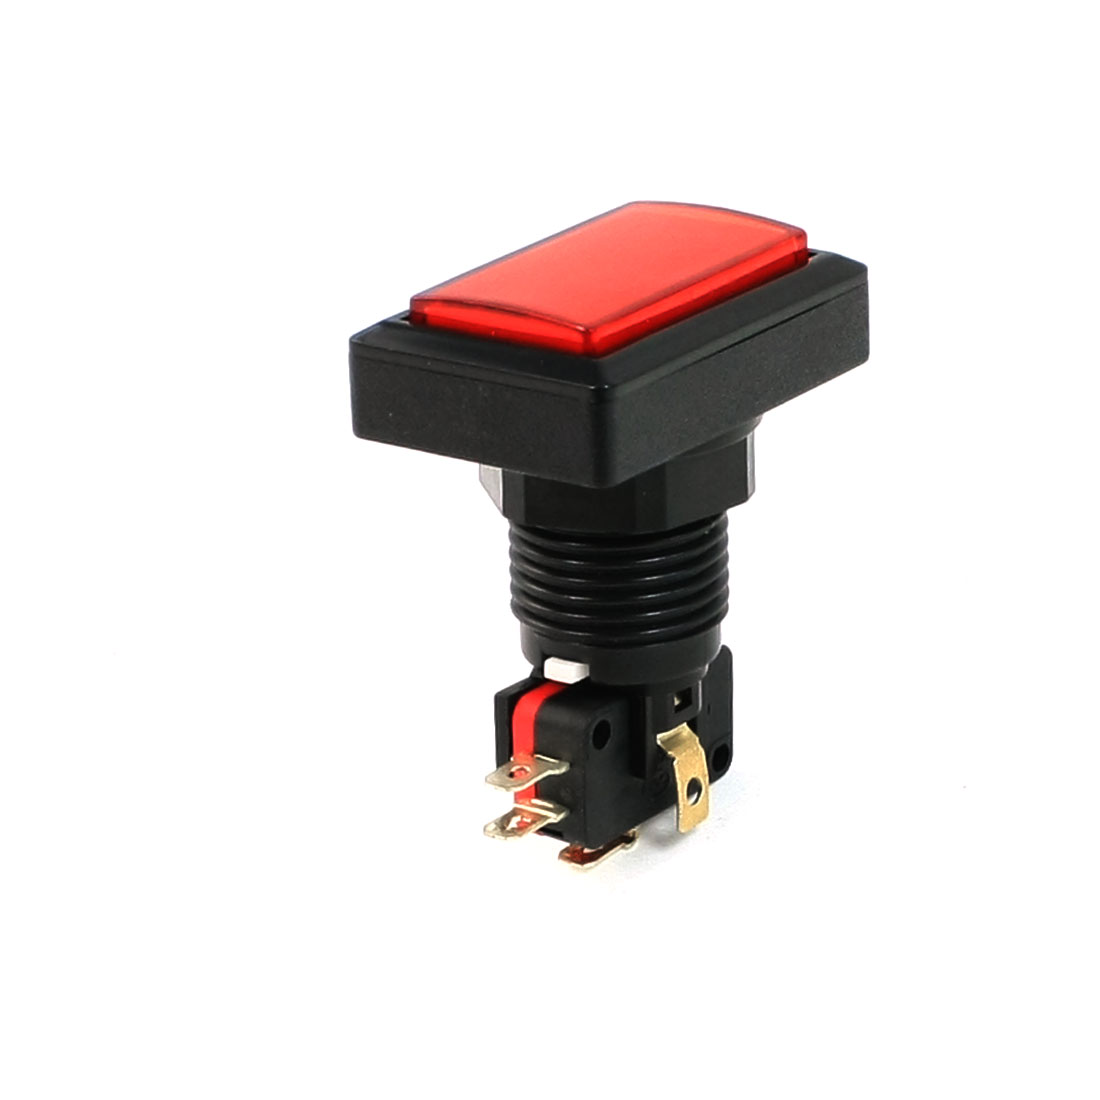 50mm x 33mm AC 250V 15A Illuminated Rectangle Red Momentary Push Button Switch